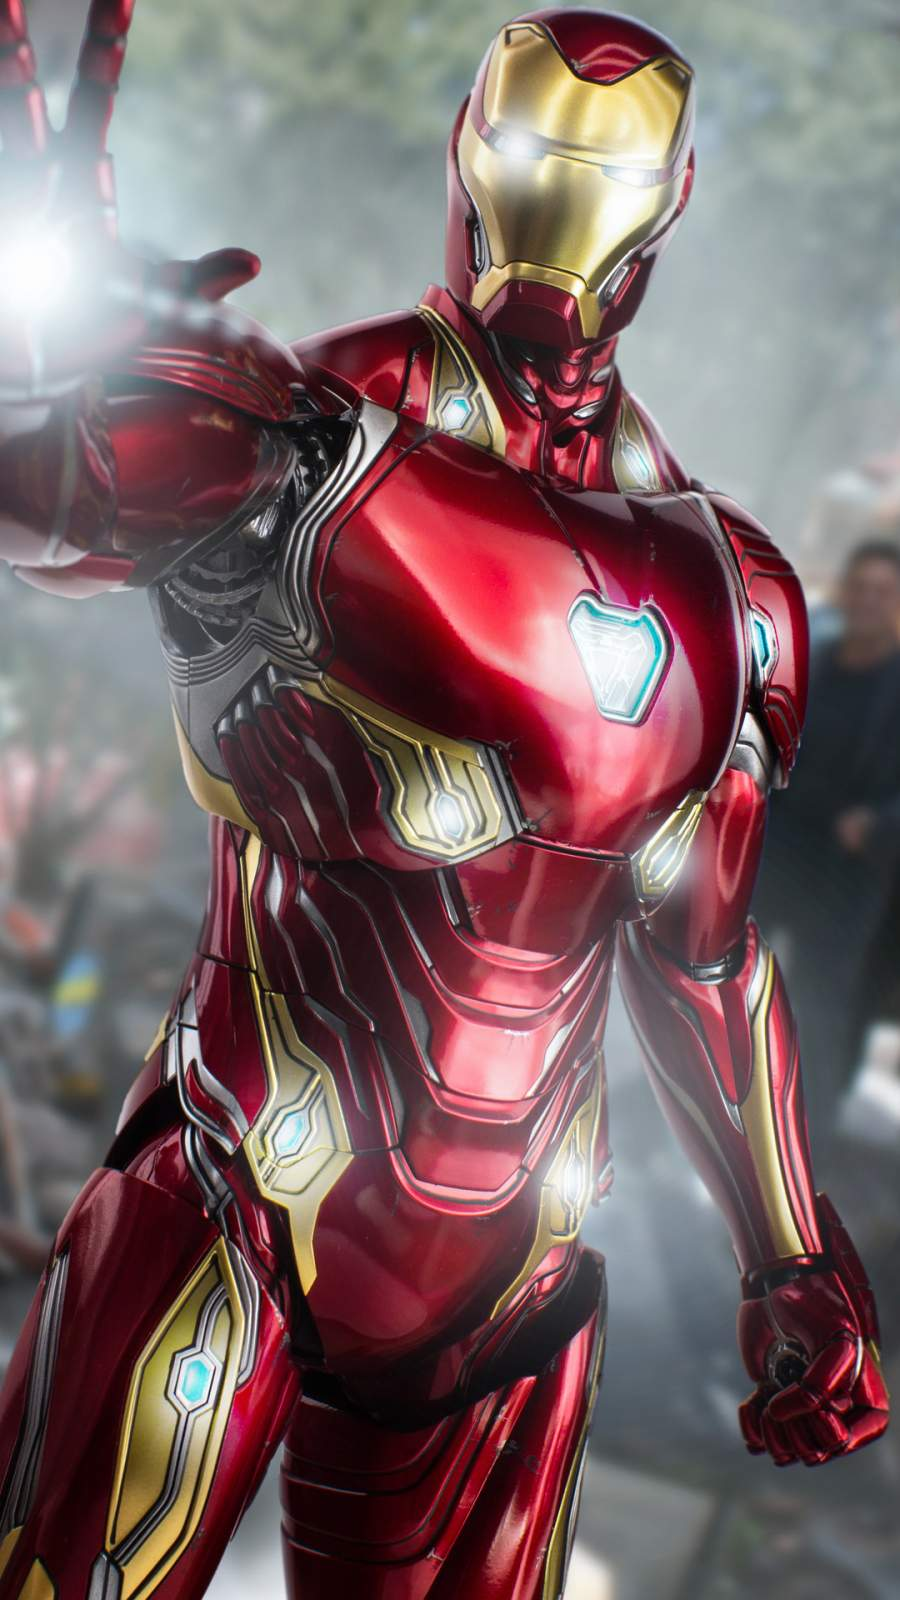 Iron Man Mark 50 4K iPhone Wallpaper